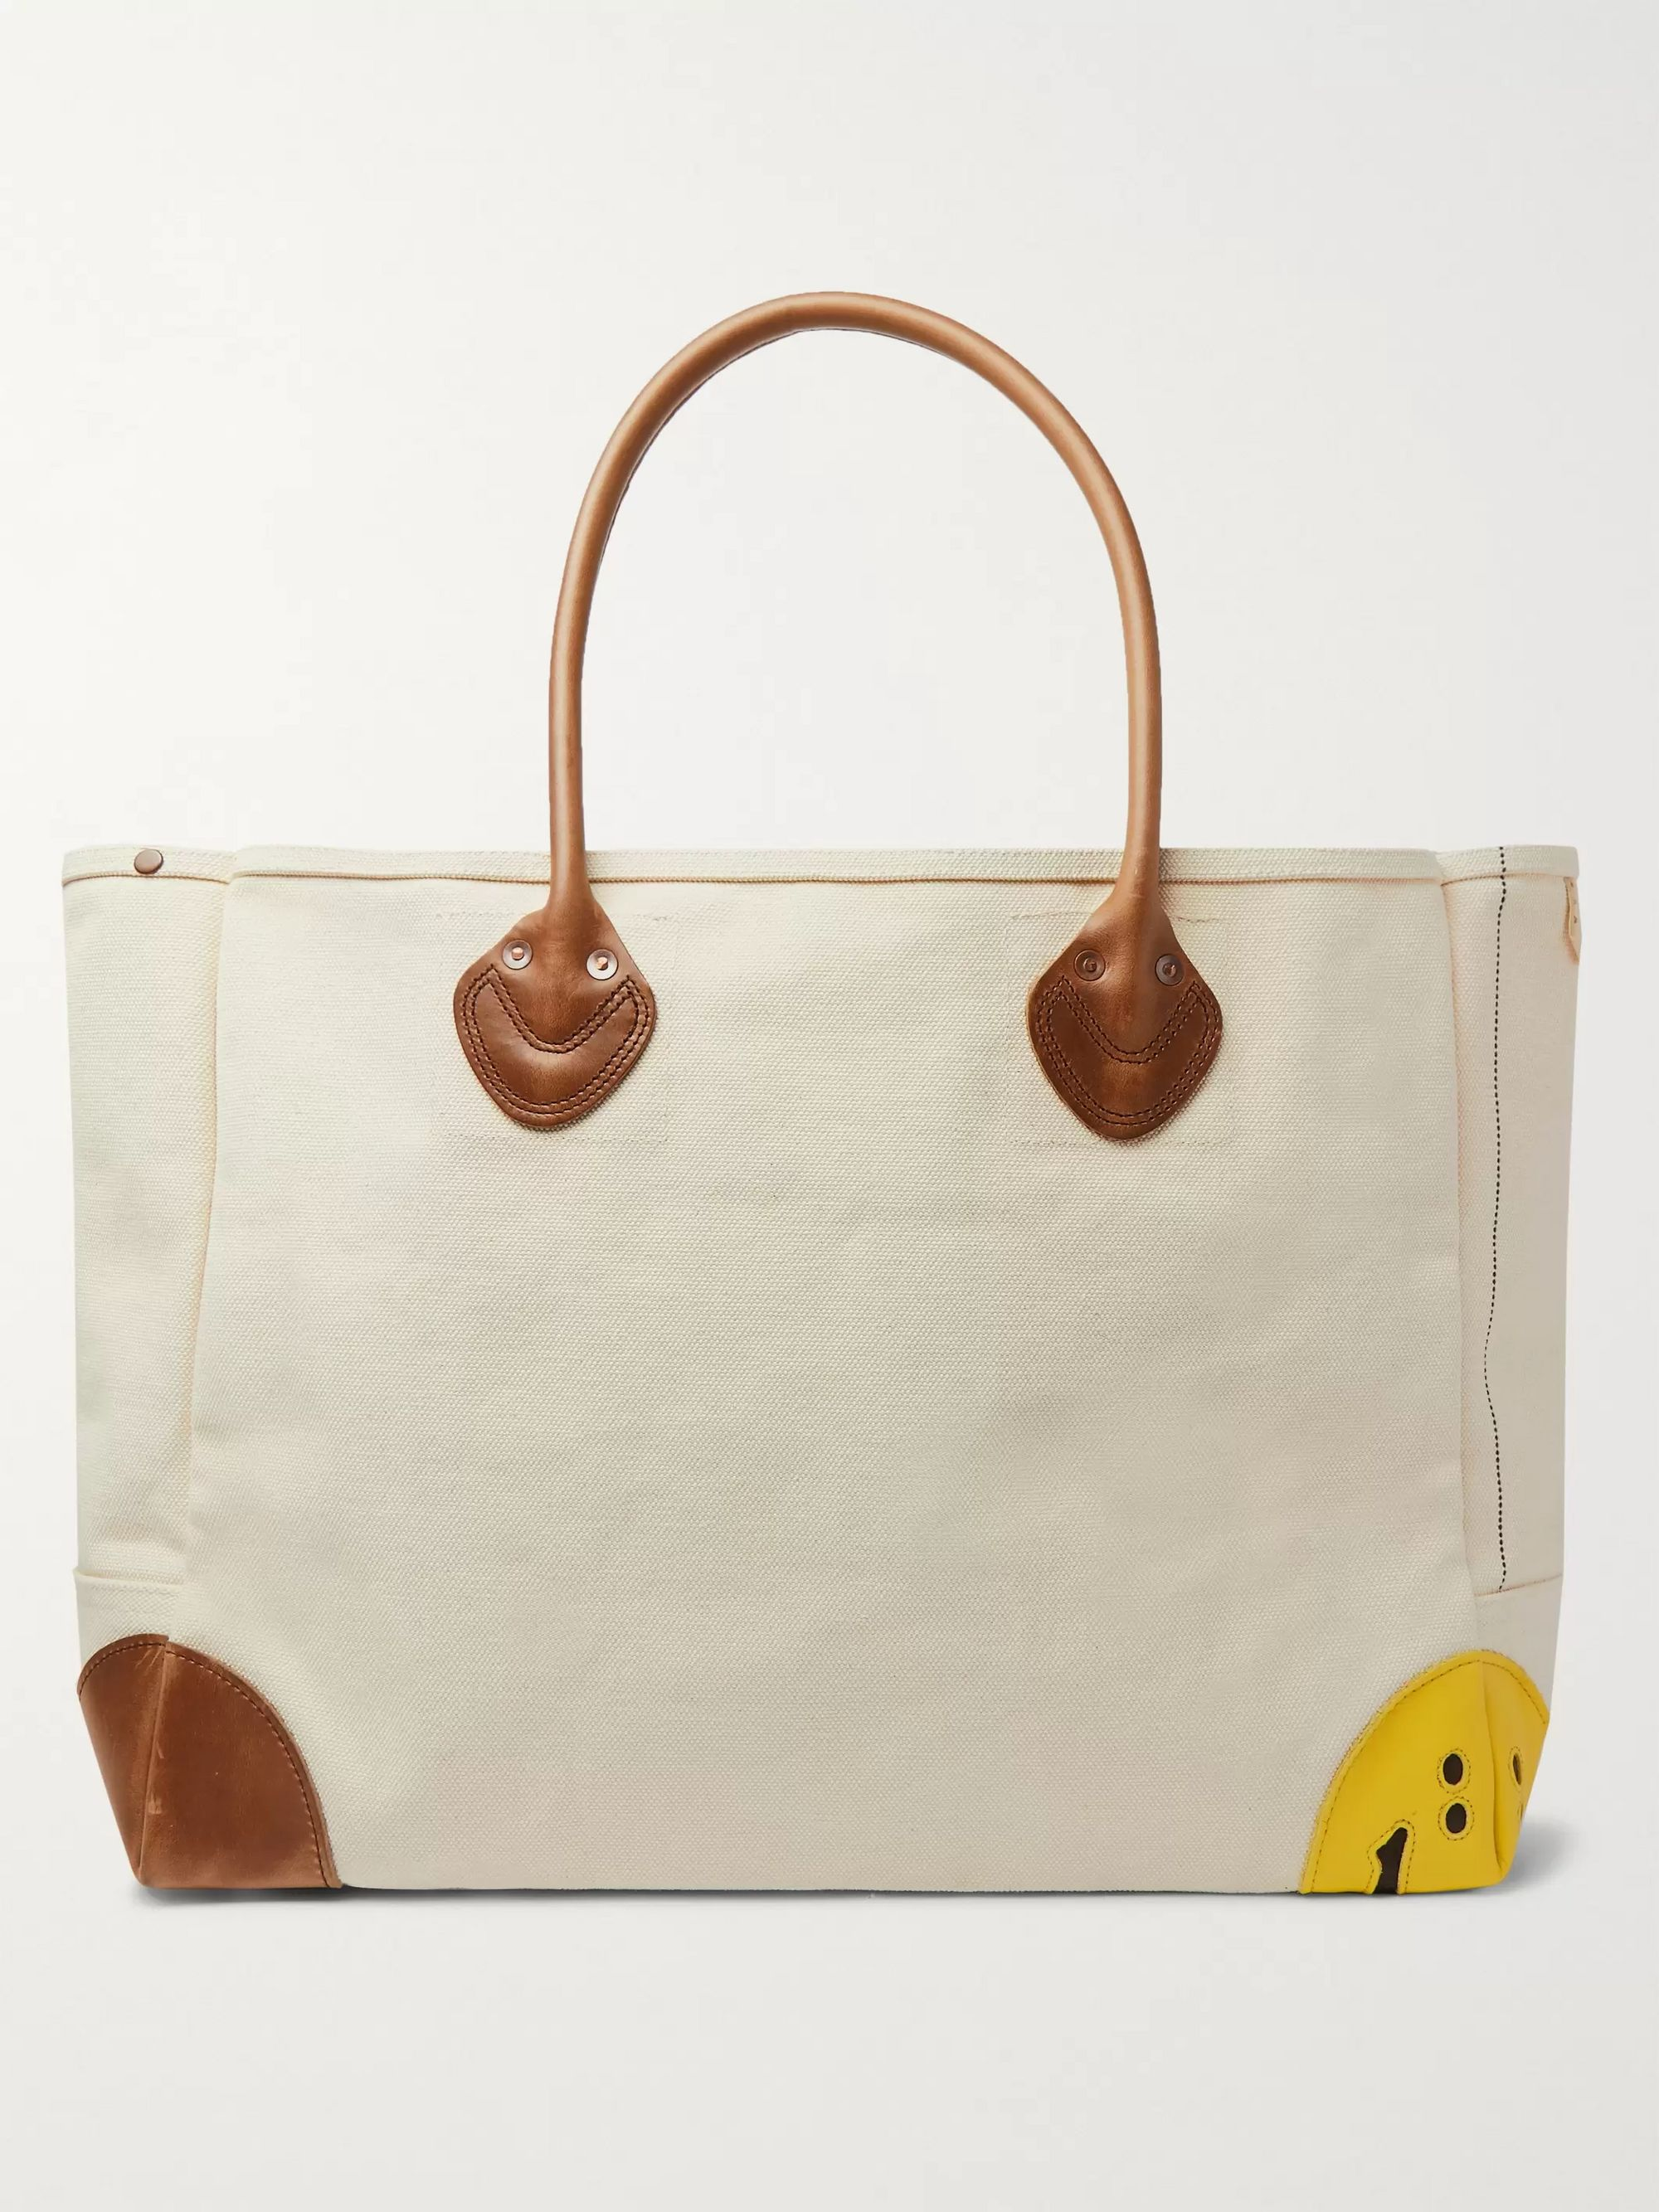 KAPITAL Smiley Leather-Trimmed Canvas Tote Bag